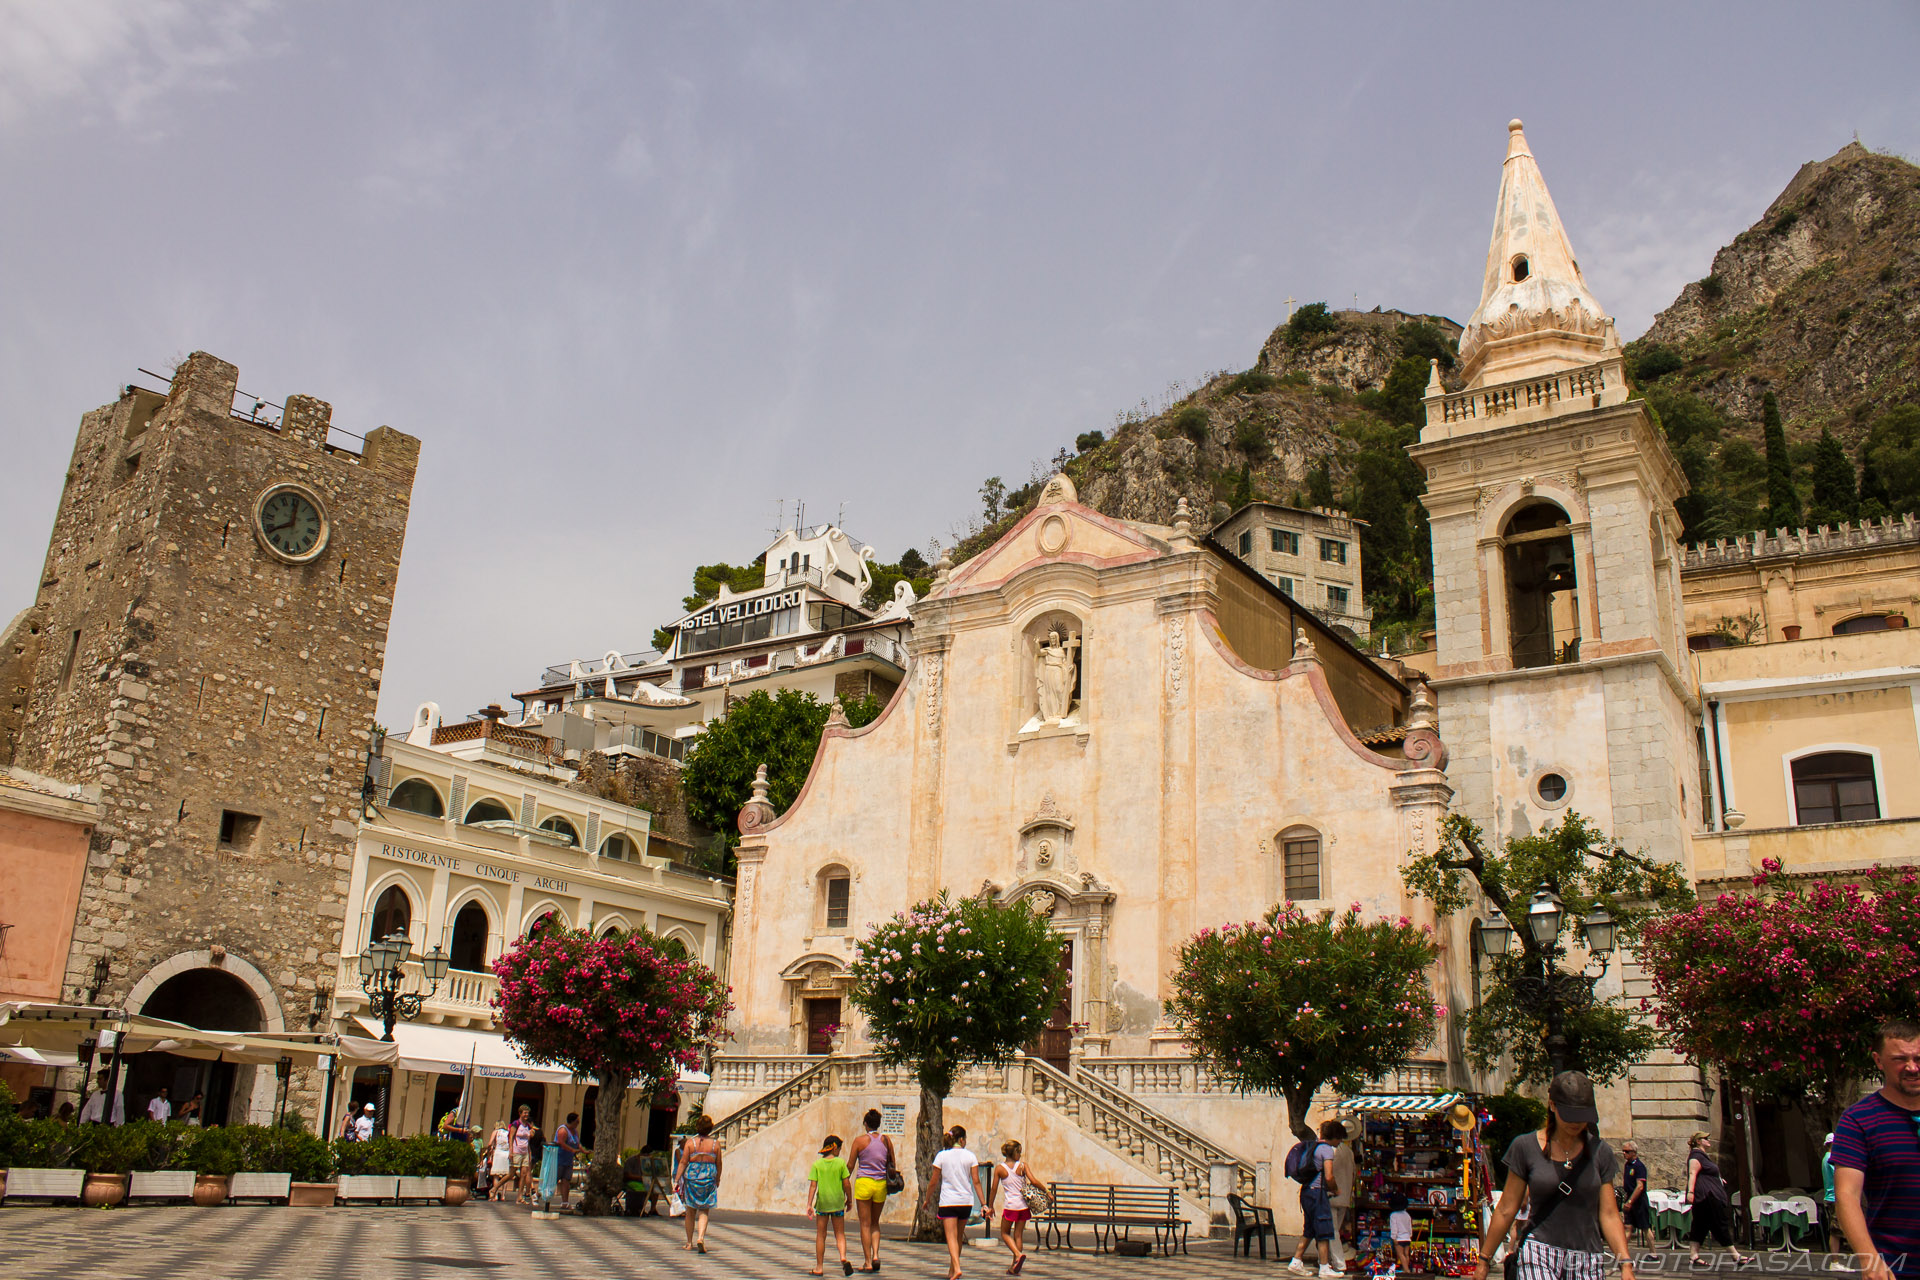 http://photorasa.com/taormina/taormina-town-church/